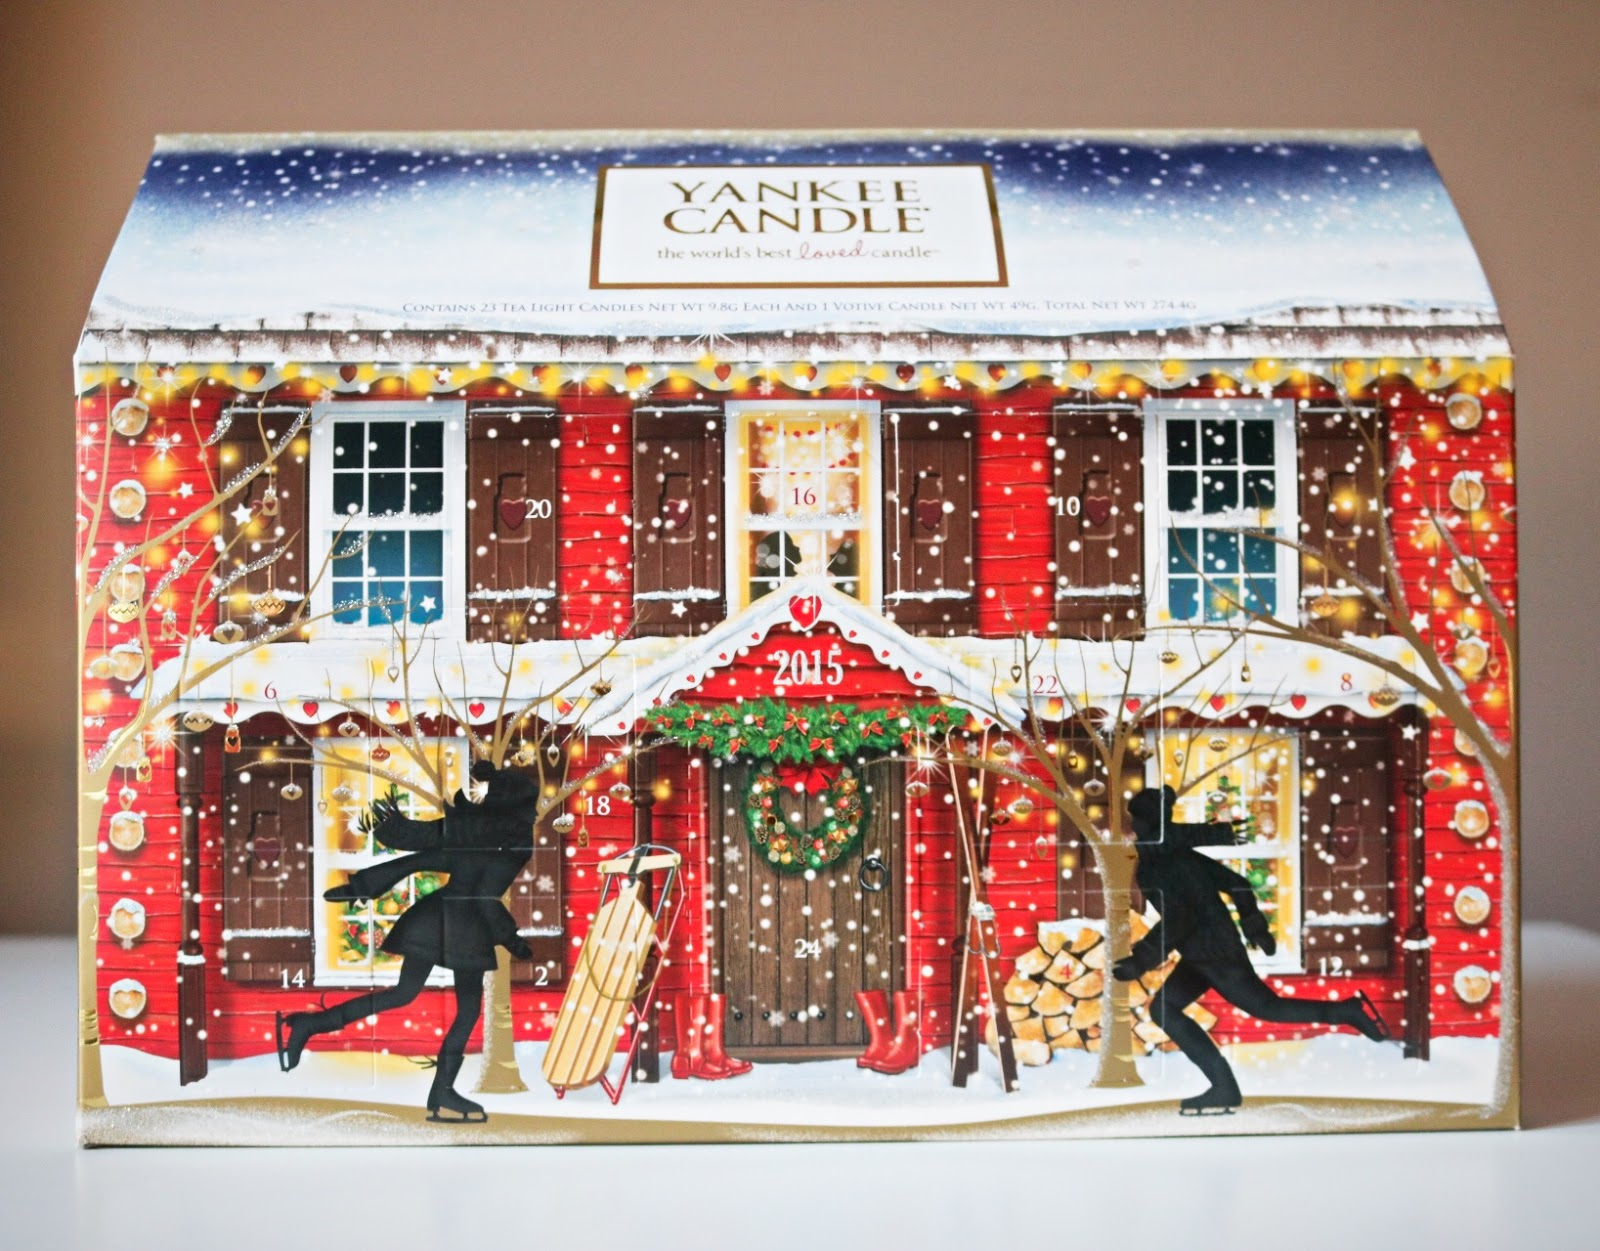 The mid-range Yankee Candle calendar offering is the Fold Out Advent, which reveals a beautiful Christmas scene within the box and gives you a mix of 12 Votives and 12 Tea Lights each day, as well.